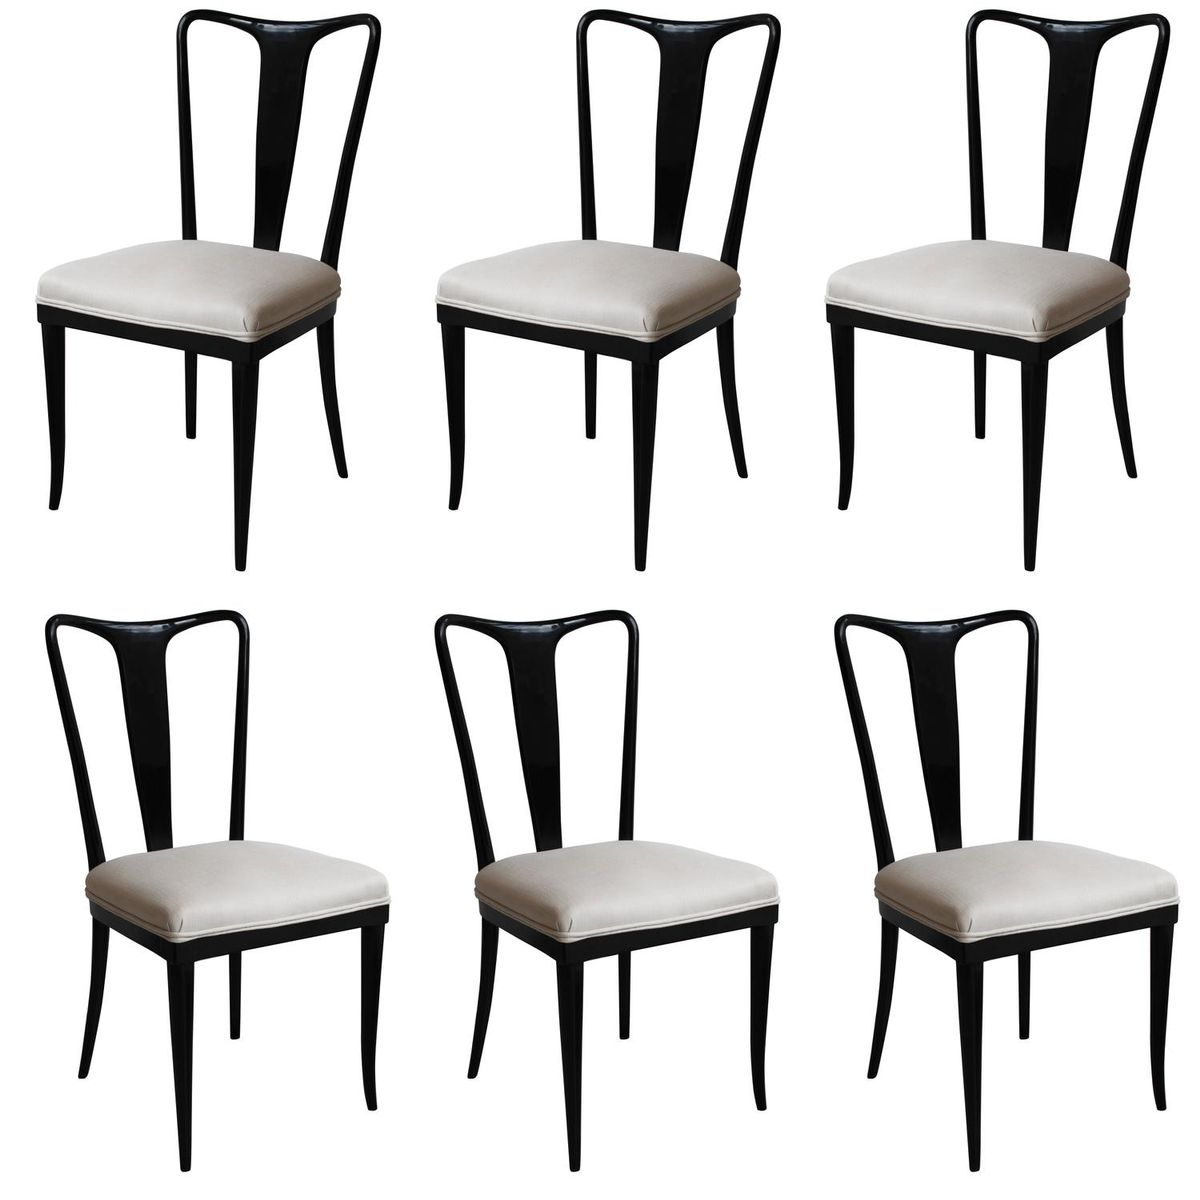 Italian dining chairs by gugliemo ulrich set of 6 for for Italian dining furniture